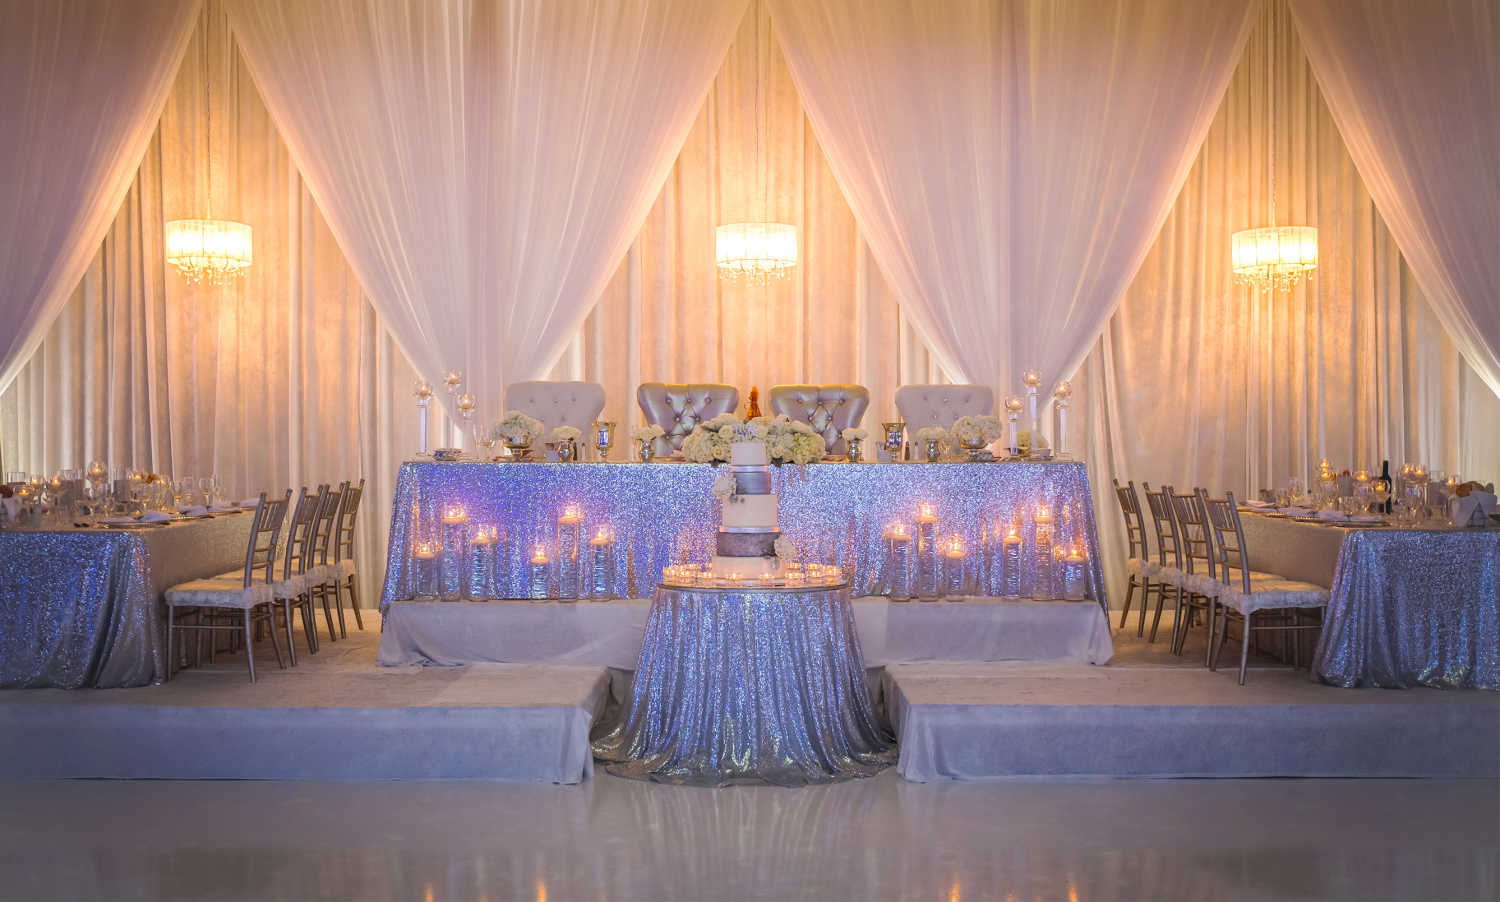 The head table for a wedding hosted at The Three Queens (Grand Queens) venue at Paradise Banquet Halls.